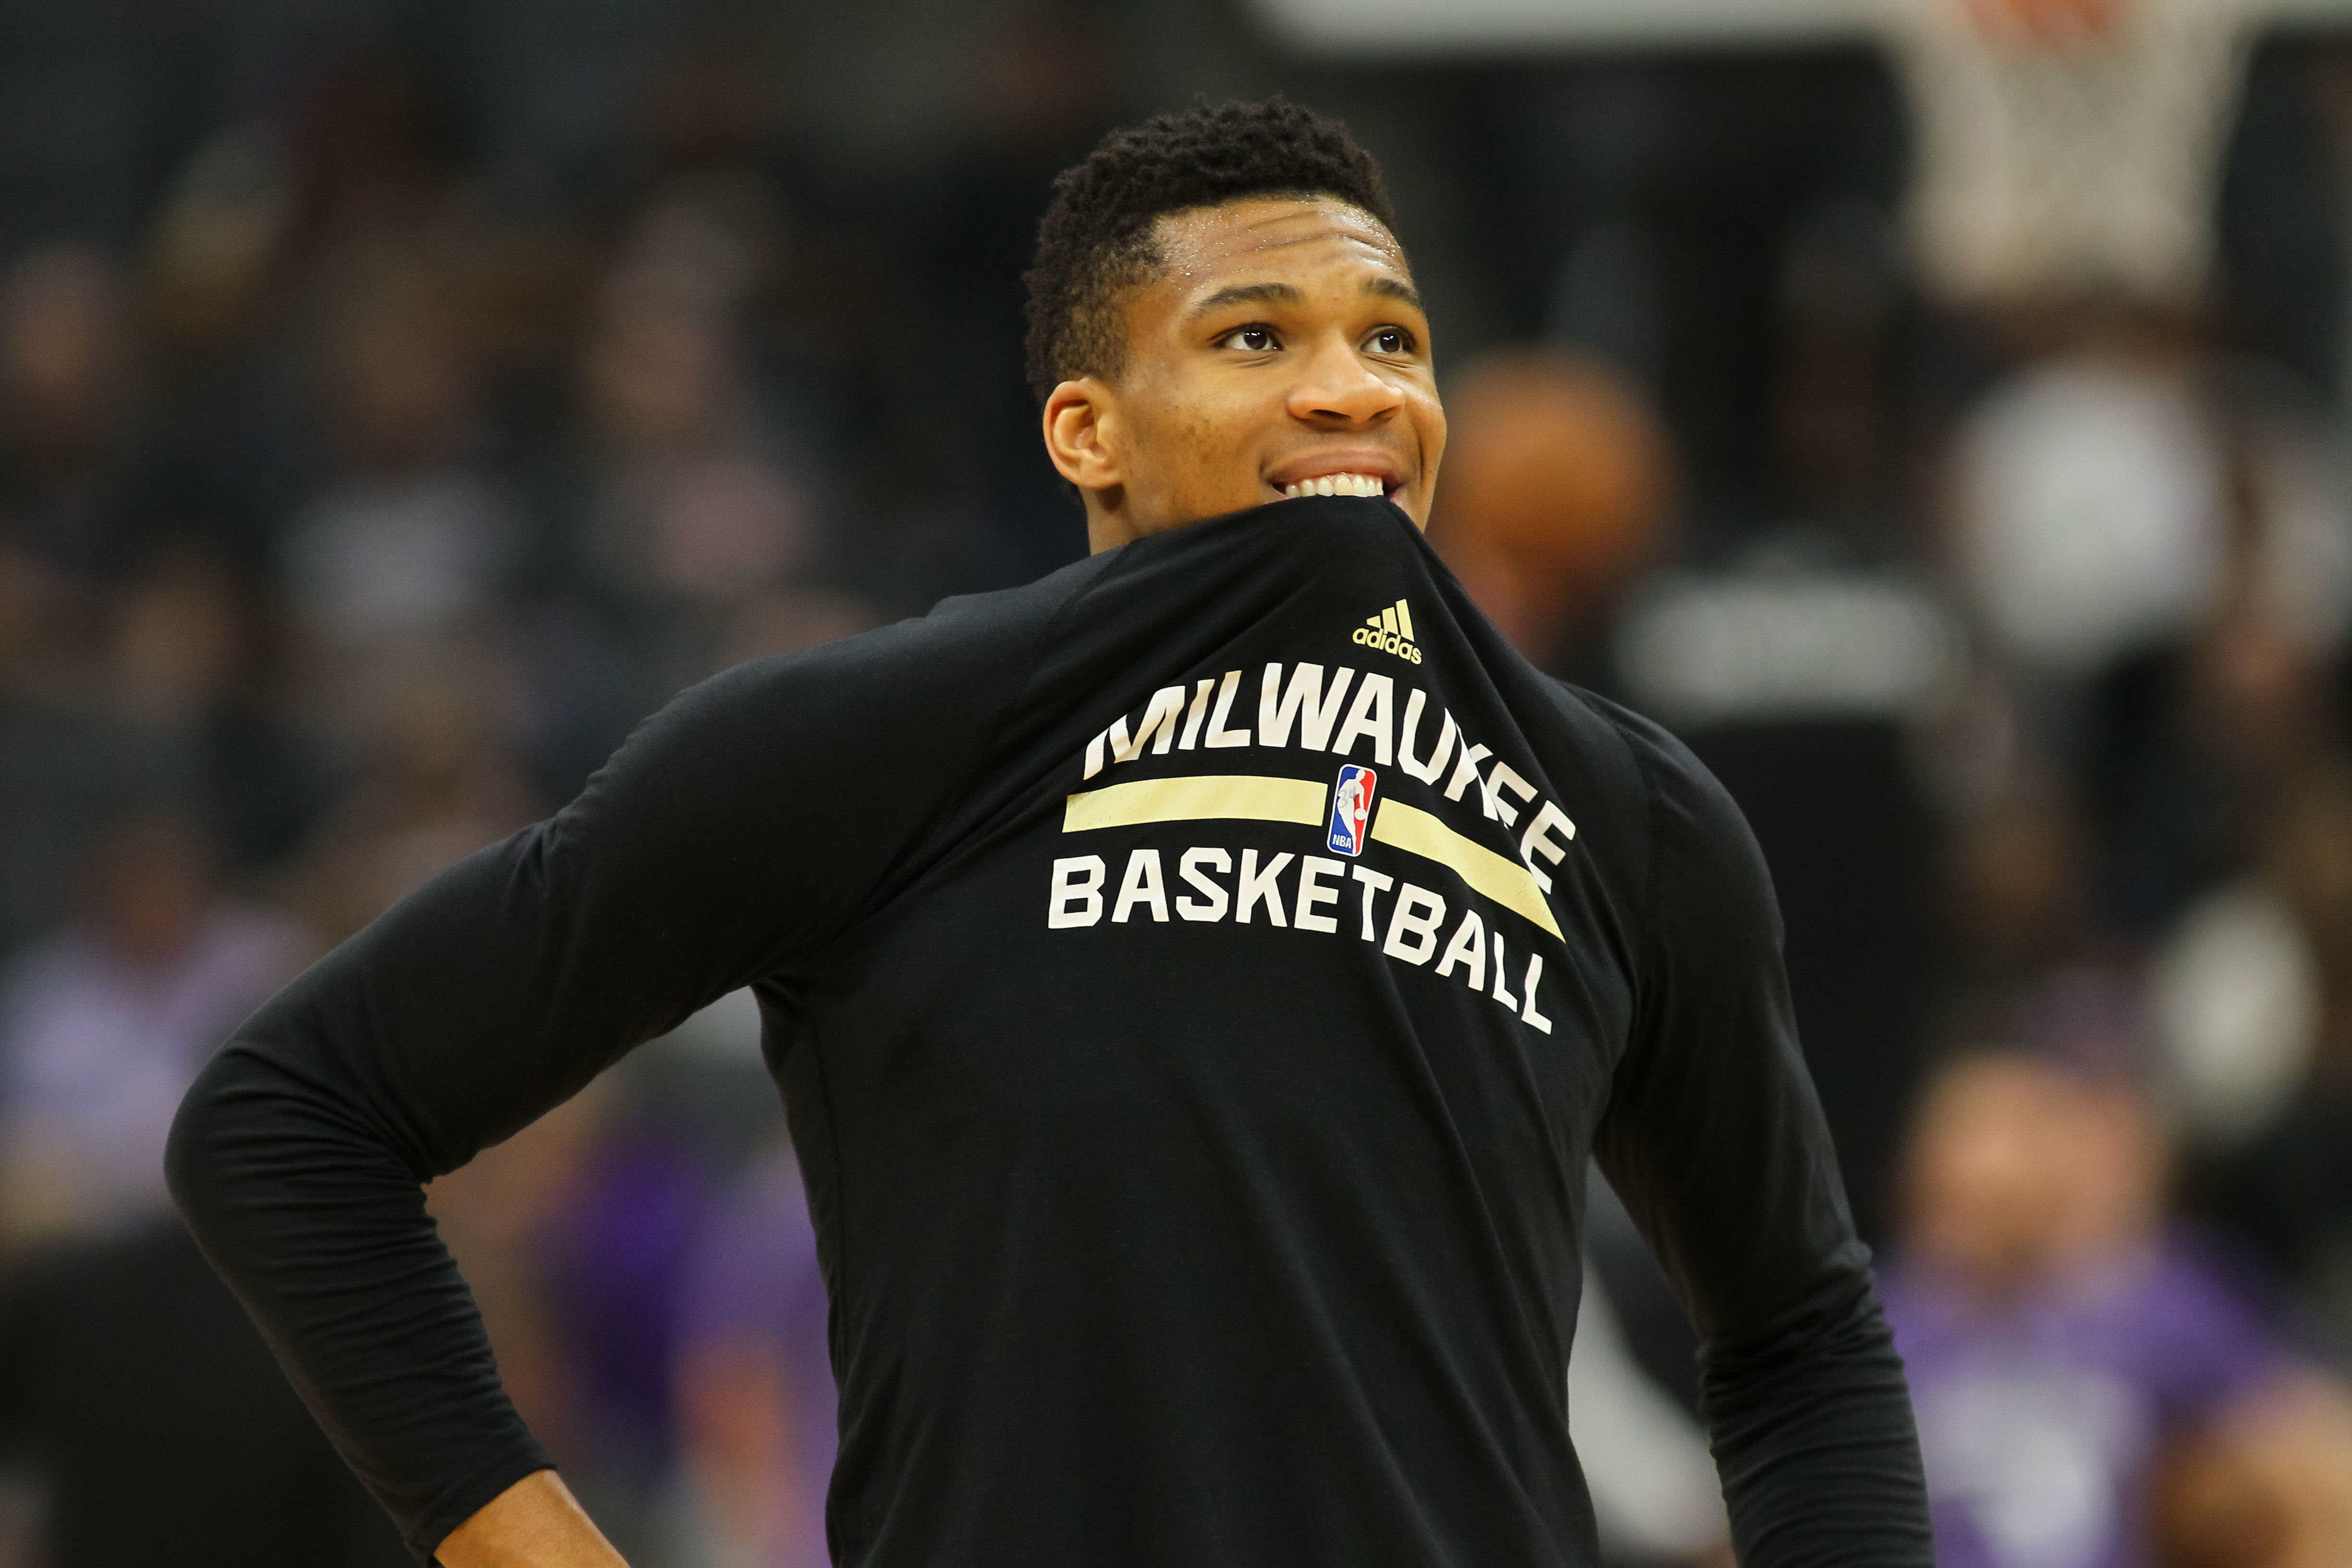 Giannis Antetokounmpos profile continues to rise The player known as the Greek Freak announced Monday he will be the cover athlete for the upcoming